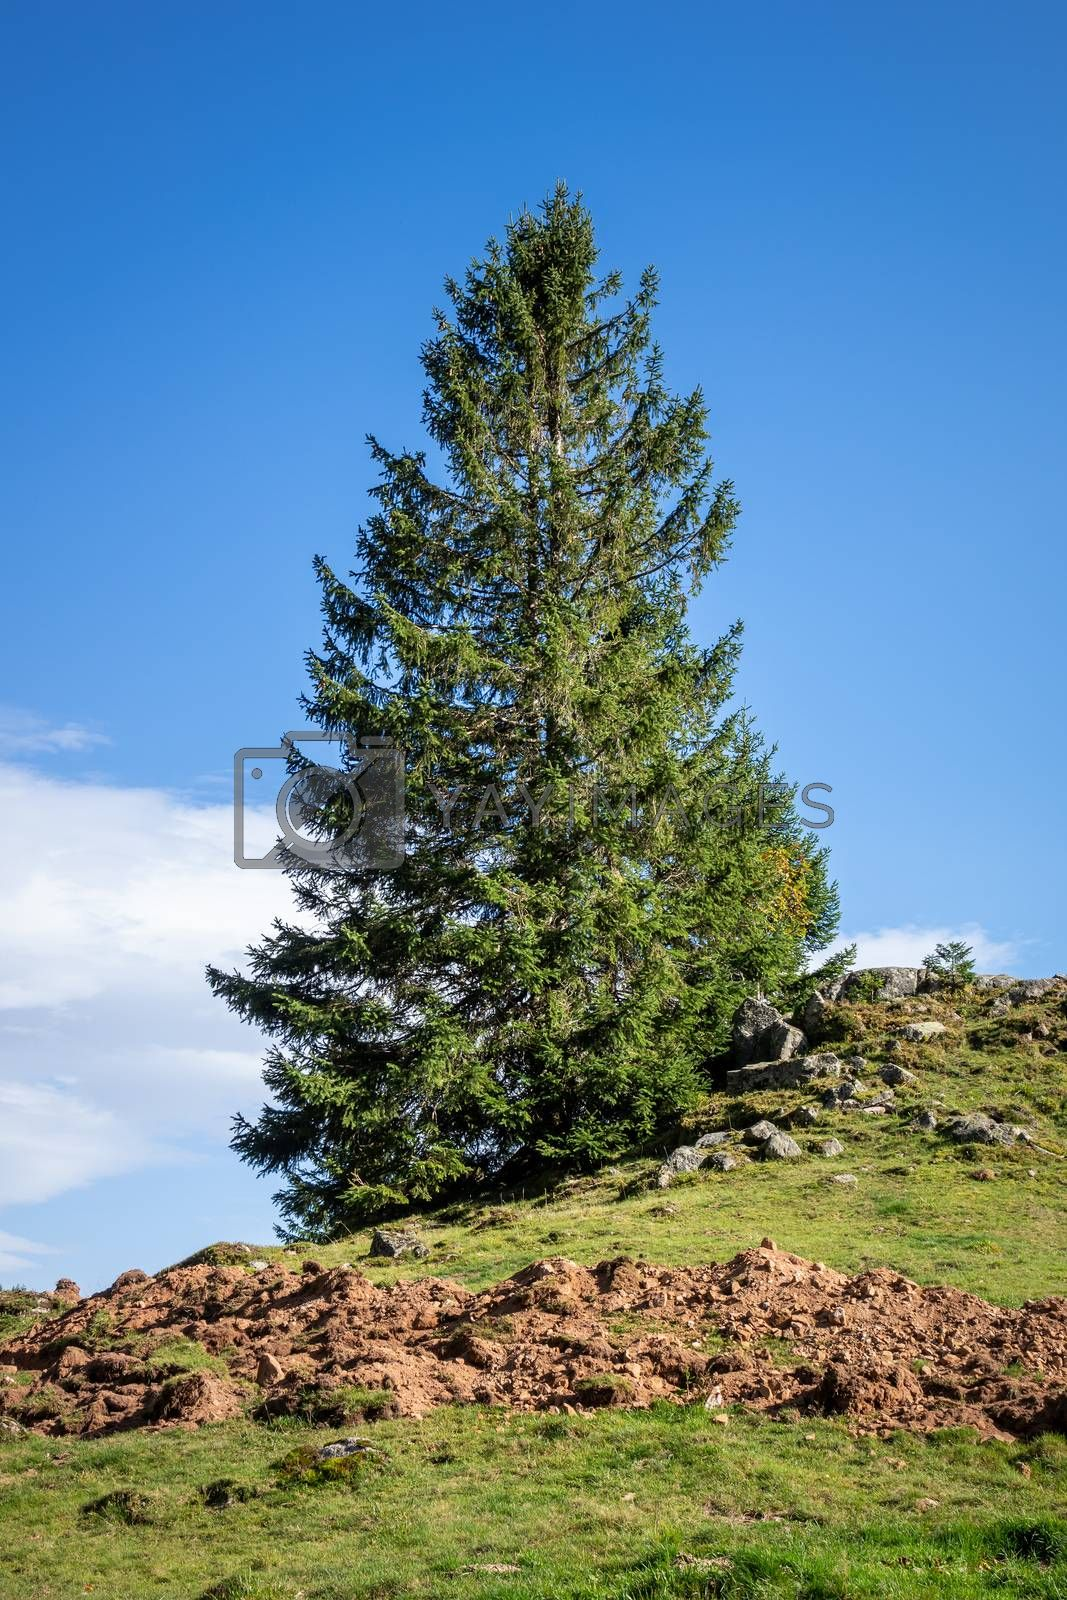 An image of a lonely fir tree in the mountains